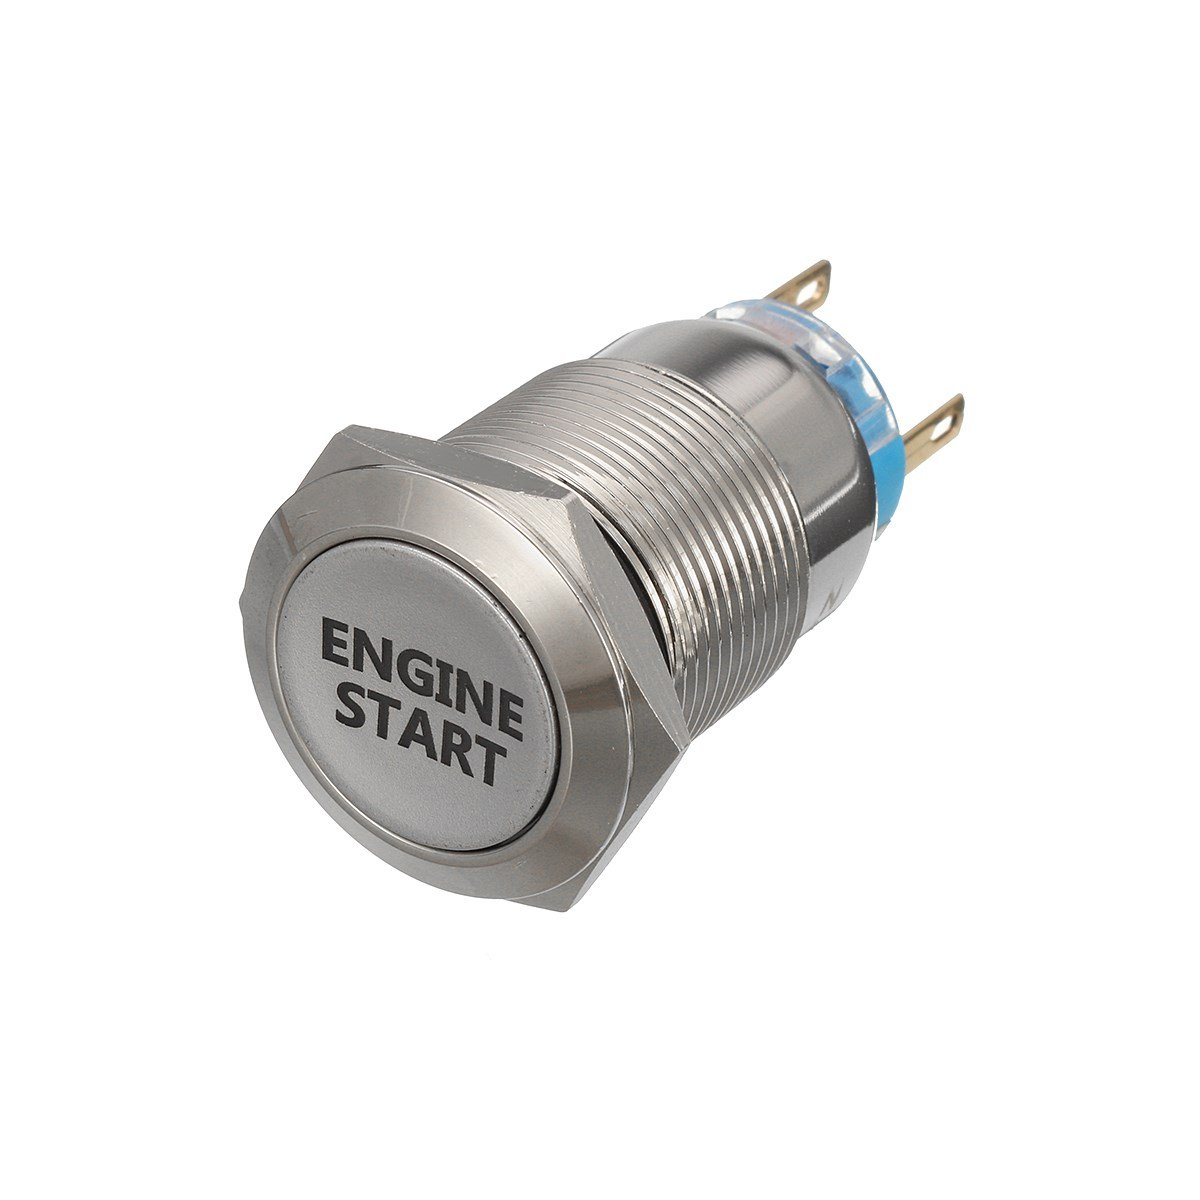 Engine Start Button Push Switch Ignition Car Automotive Converting Fro Key To Toggle And Red Led Metal 12v 3 4